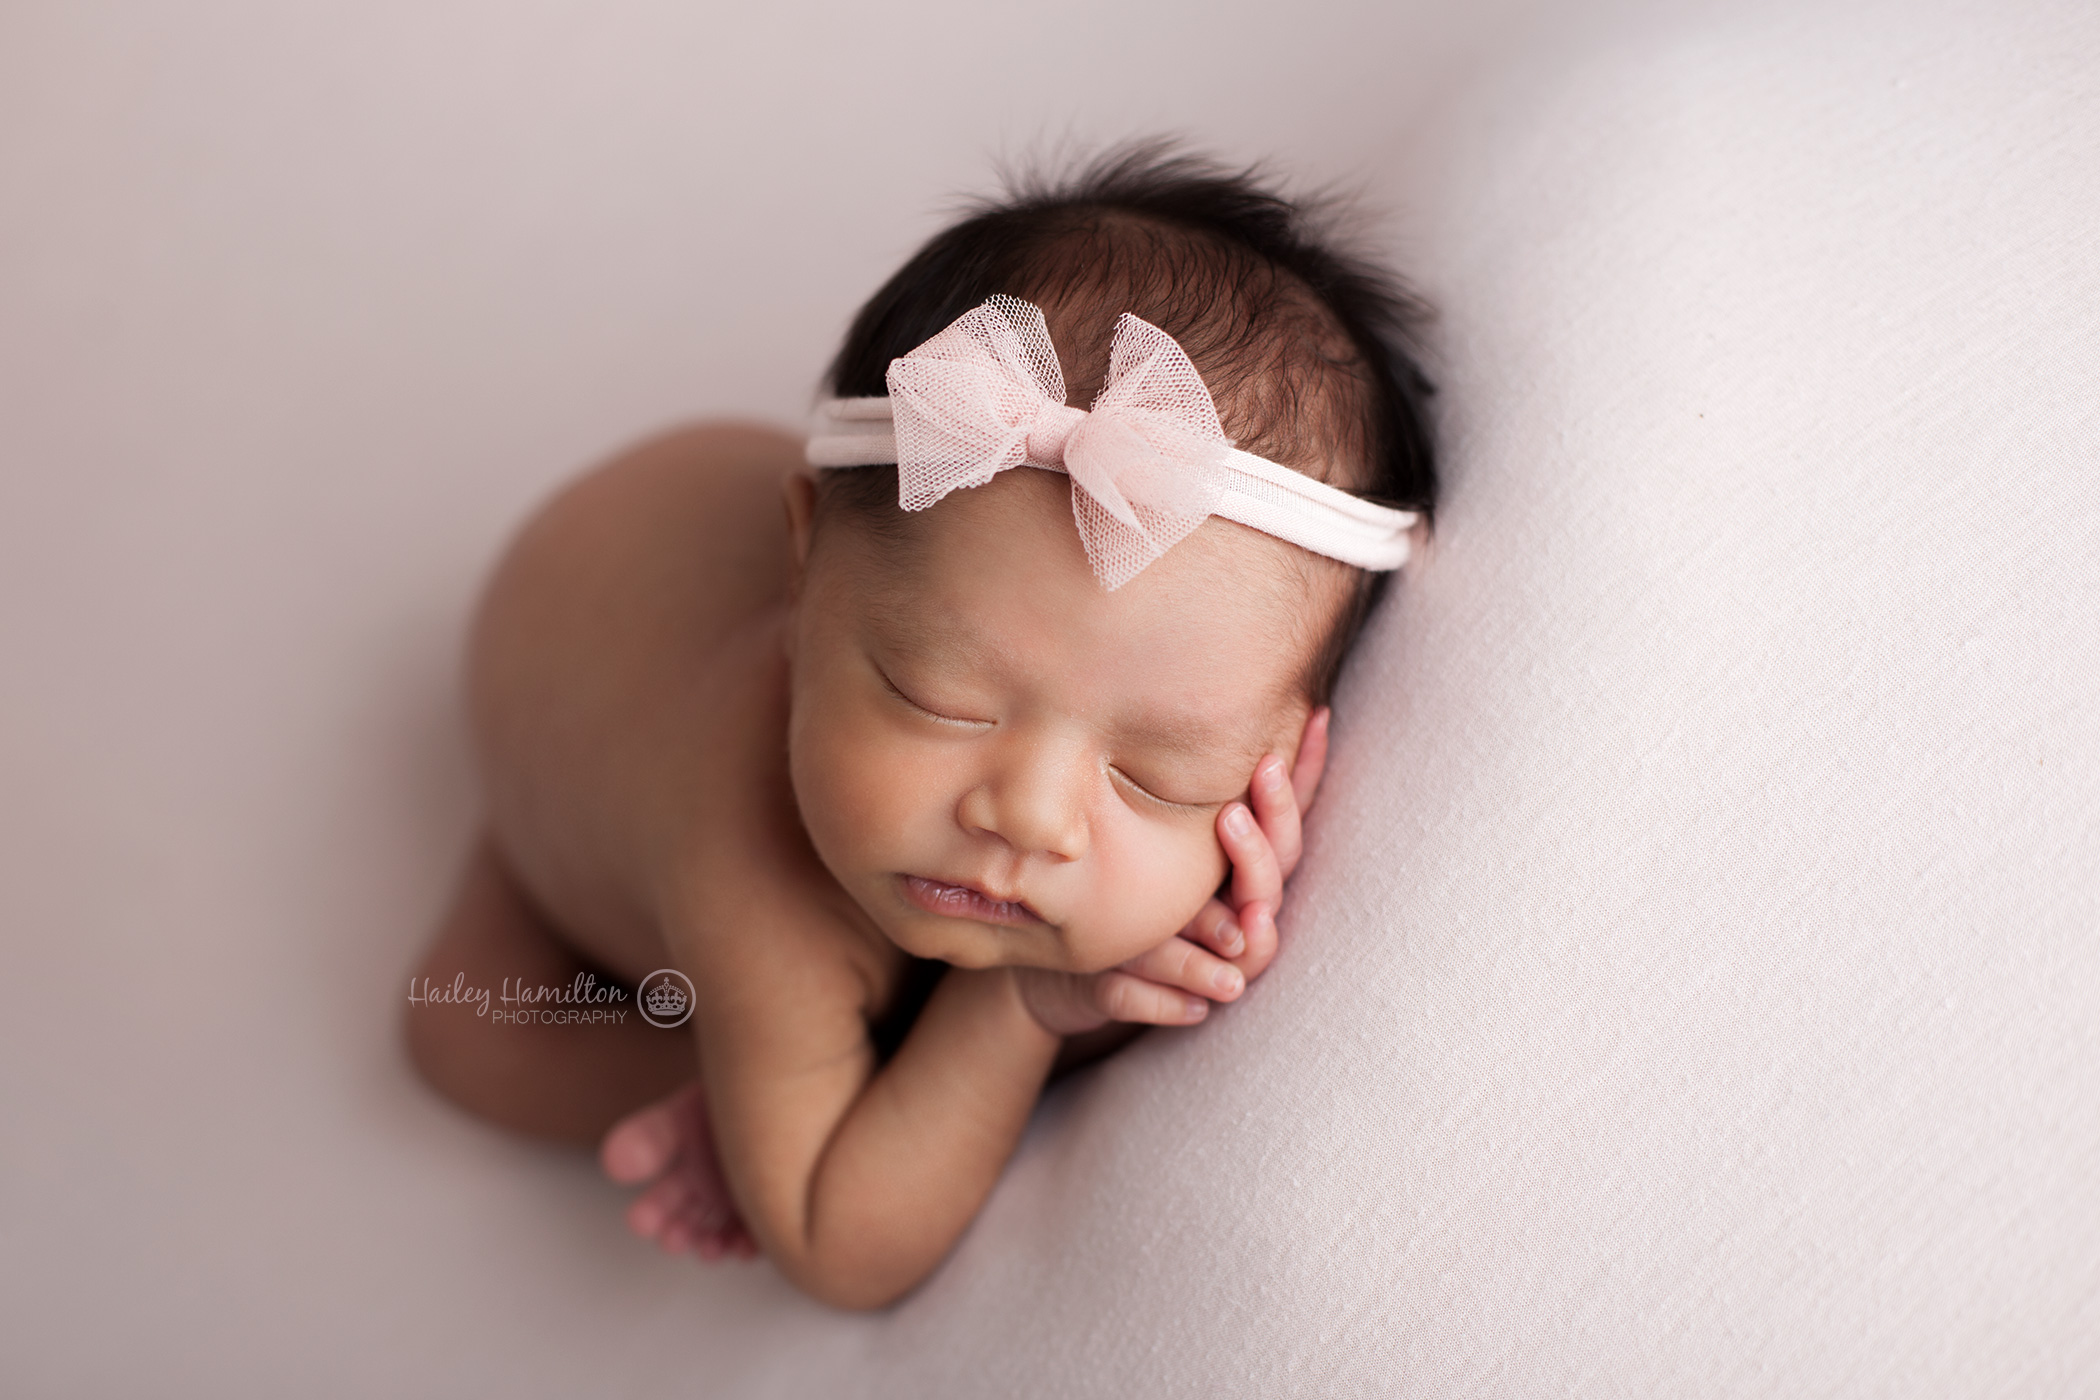 Sleepy newborn baby photography pose